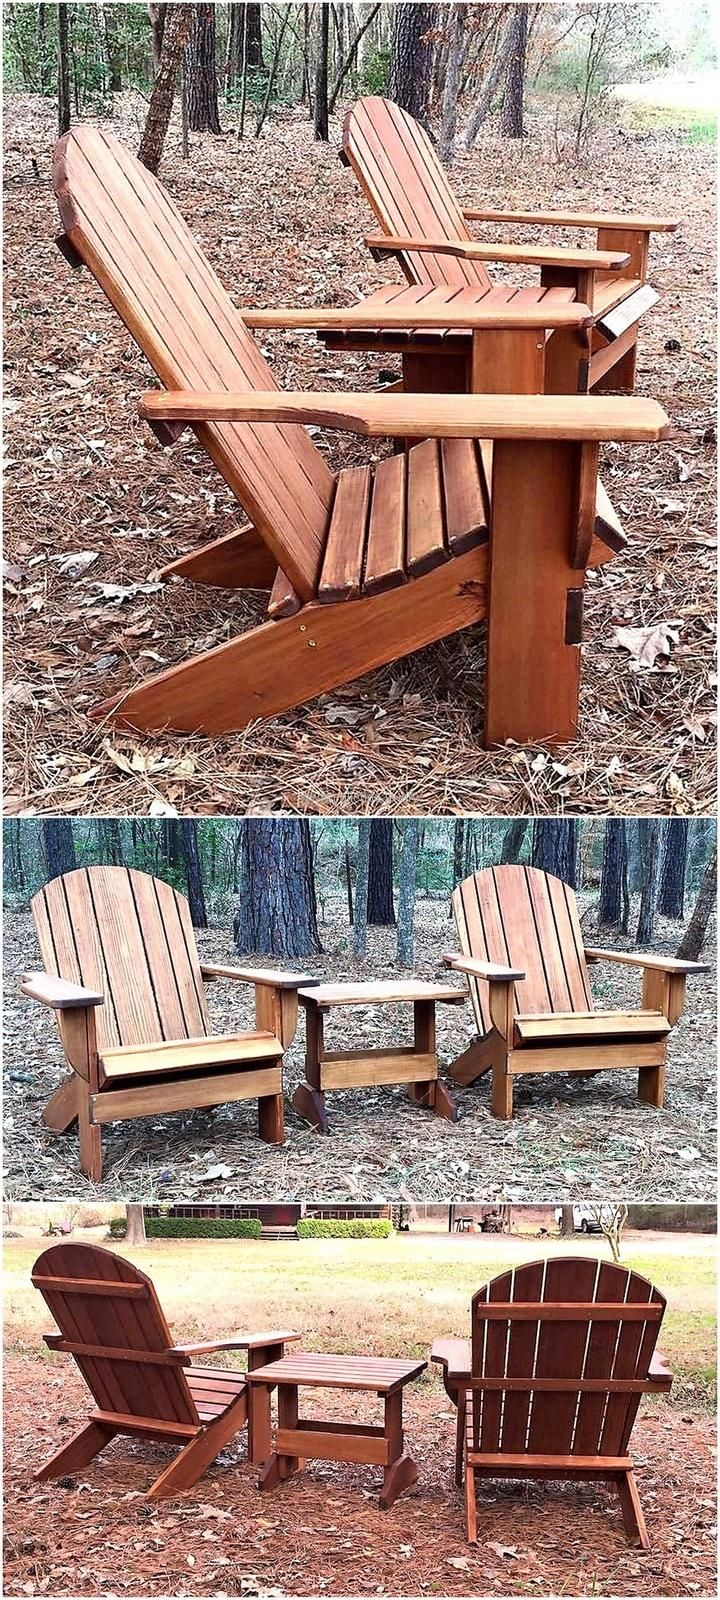 For the lawn or garden of the home, here is an idea of creating the recycled wood pallet Adirondack chairs with the table matching with them. The set is looking great and it is good to fulfill the requirement of outdoor setting by reshaping the wood pallets instead of running to the shop to buy the furniture.